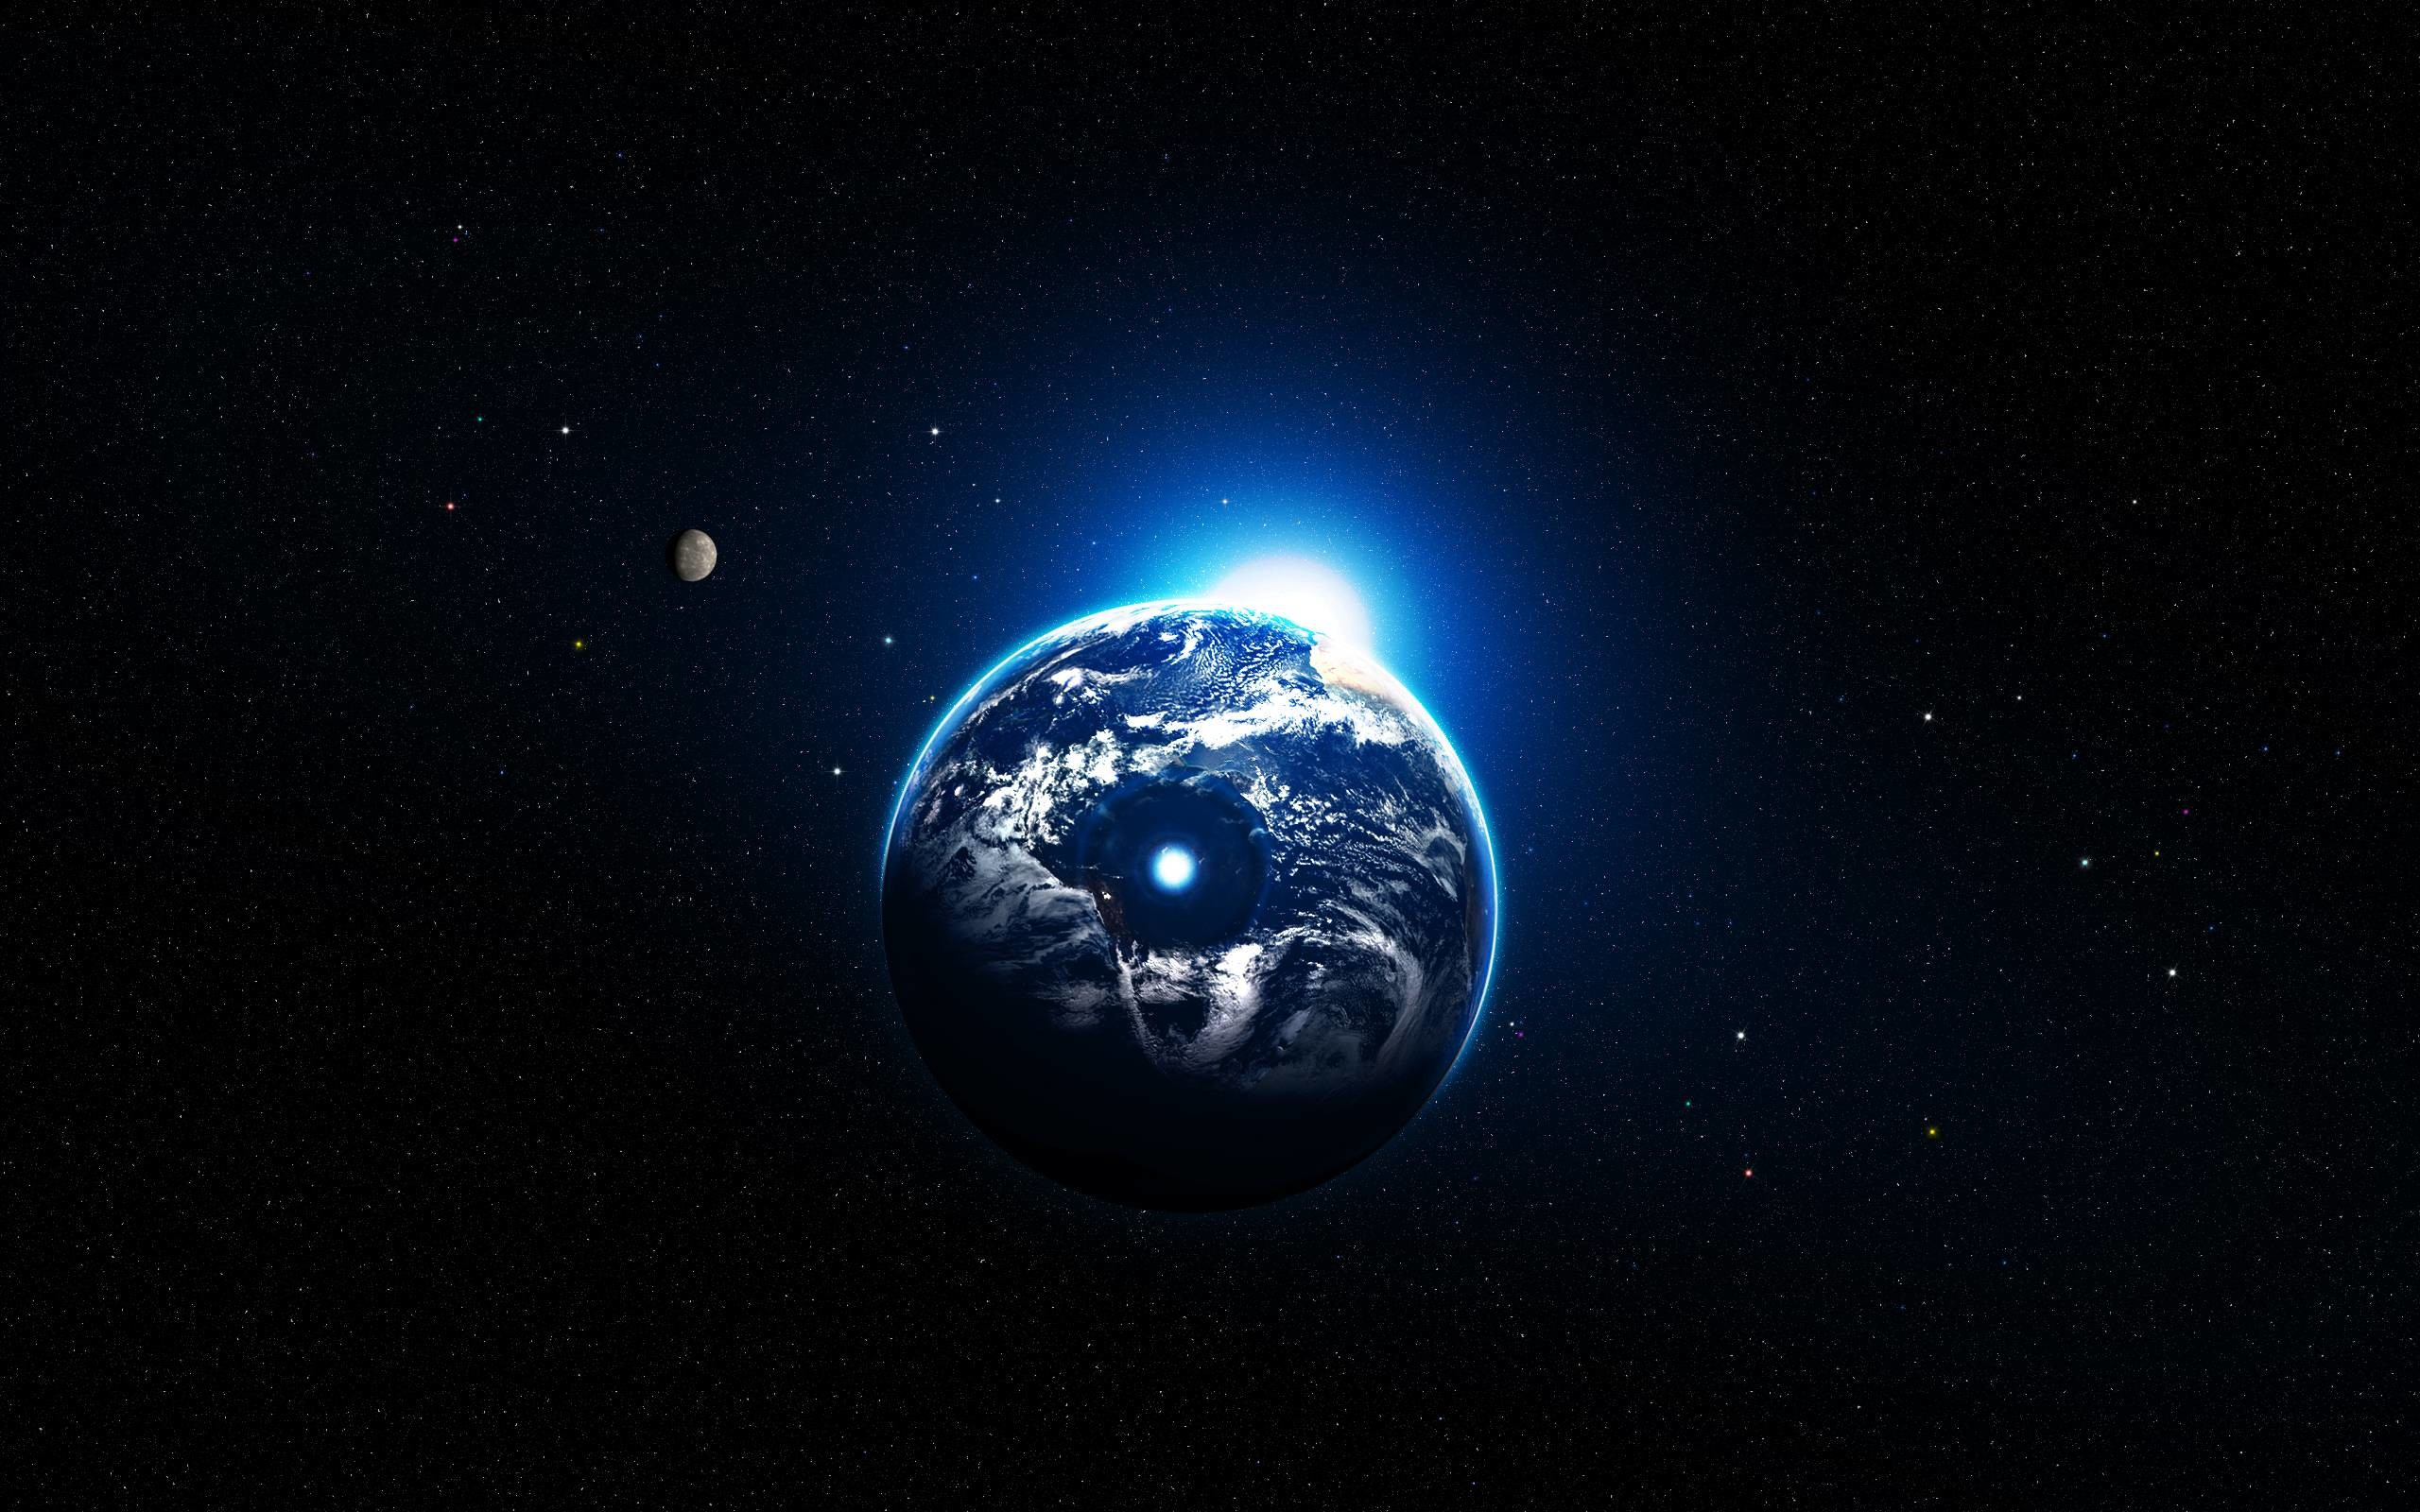 Hd Wallpapers Space Earth Background 1 HD Wallpapers | Hdwalljoy.